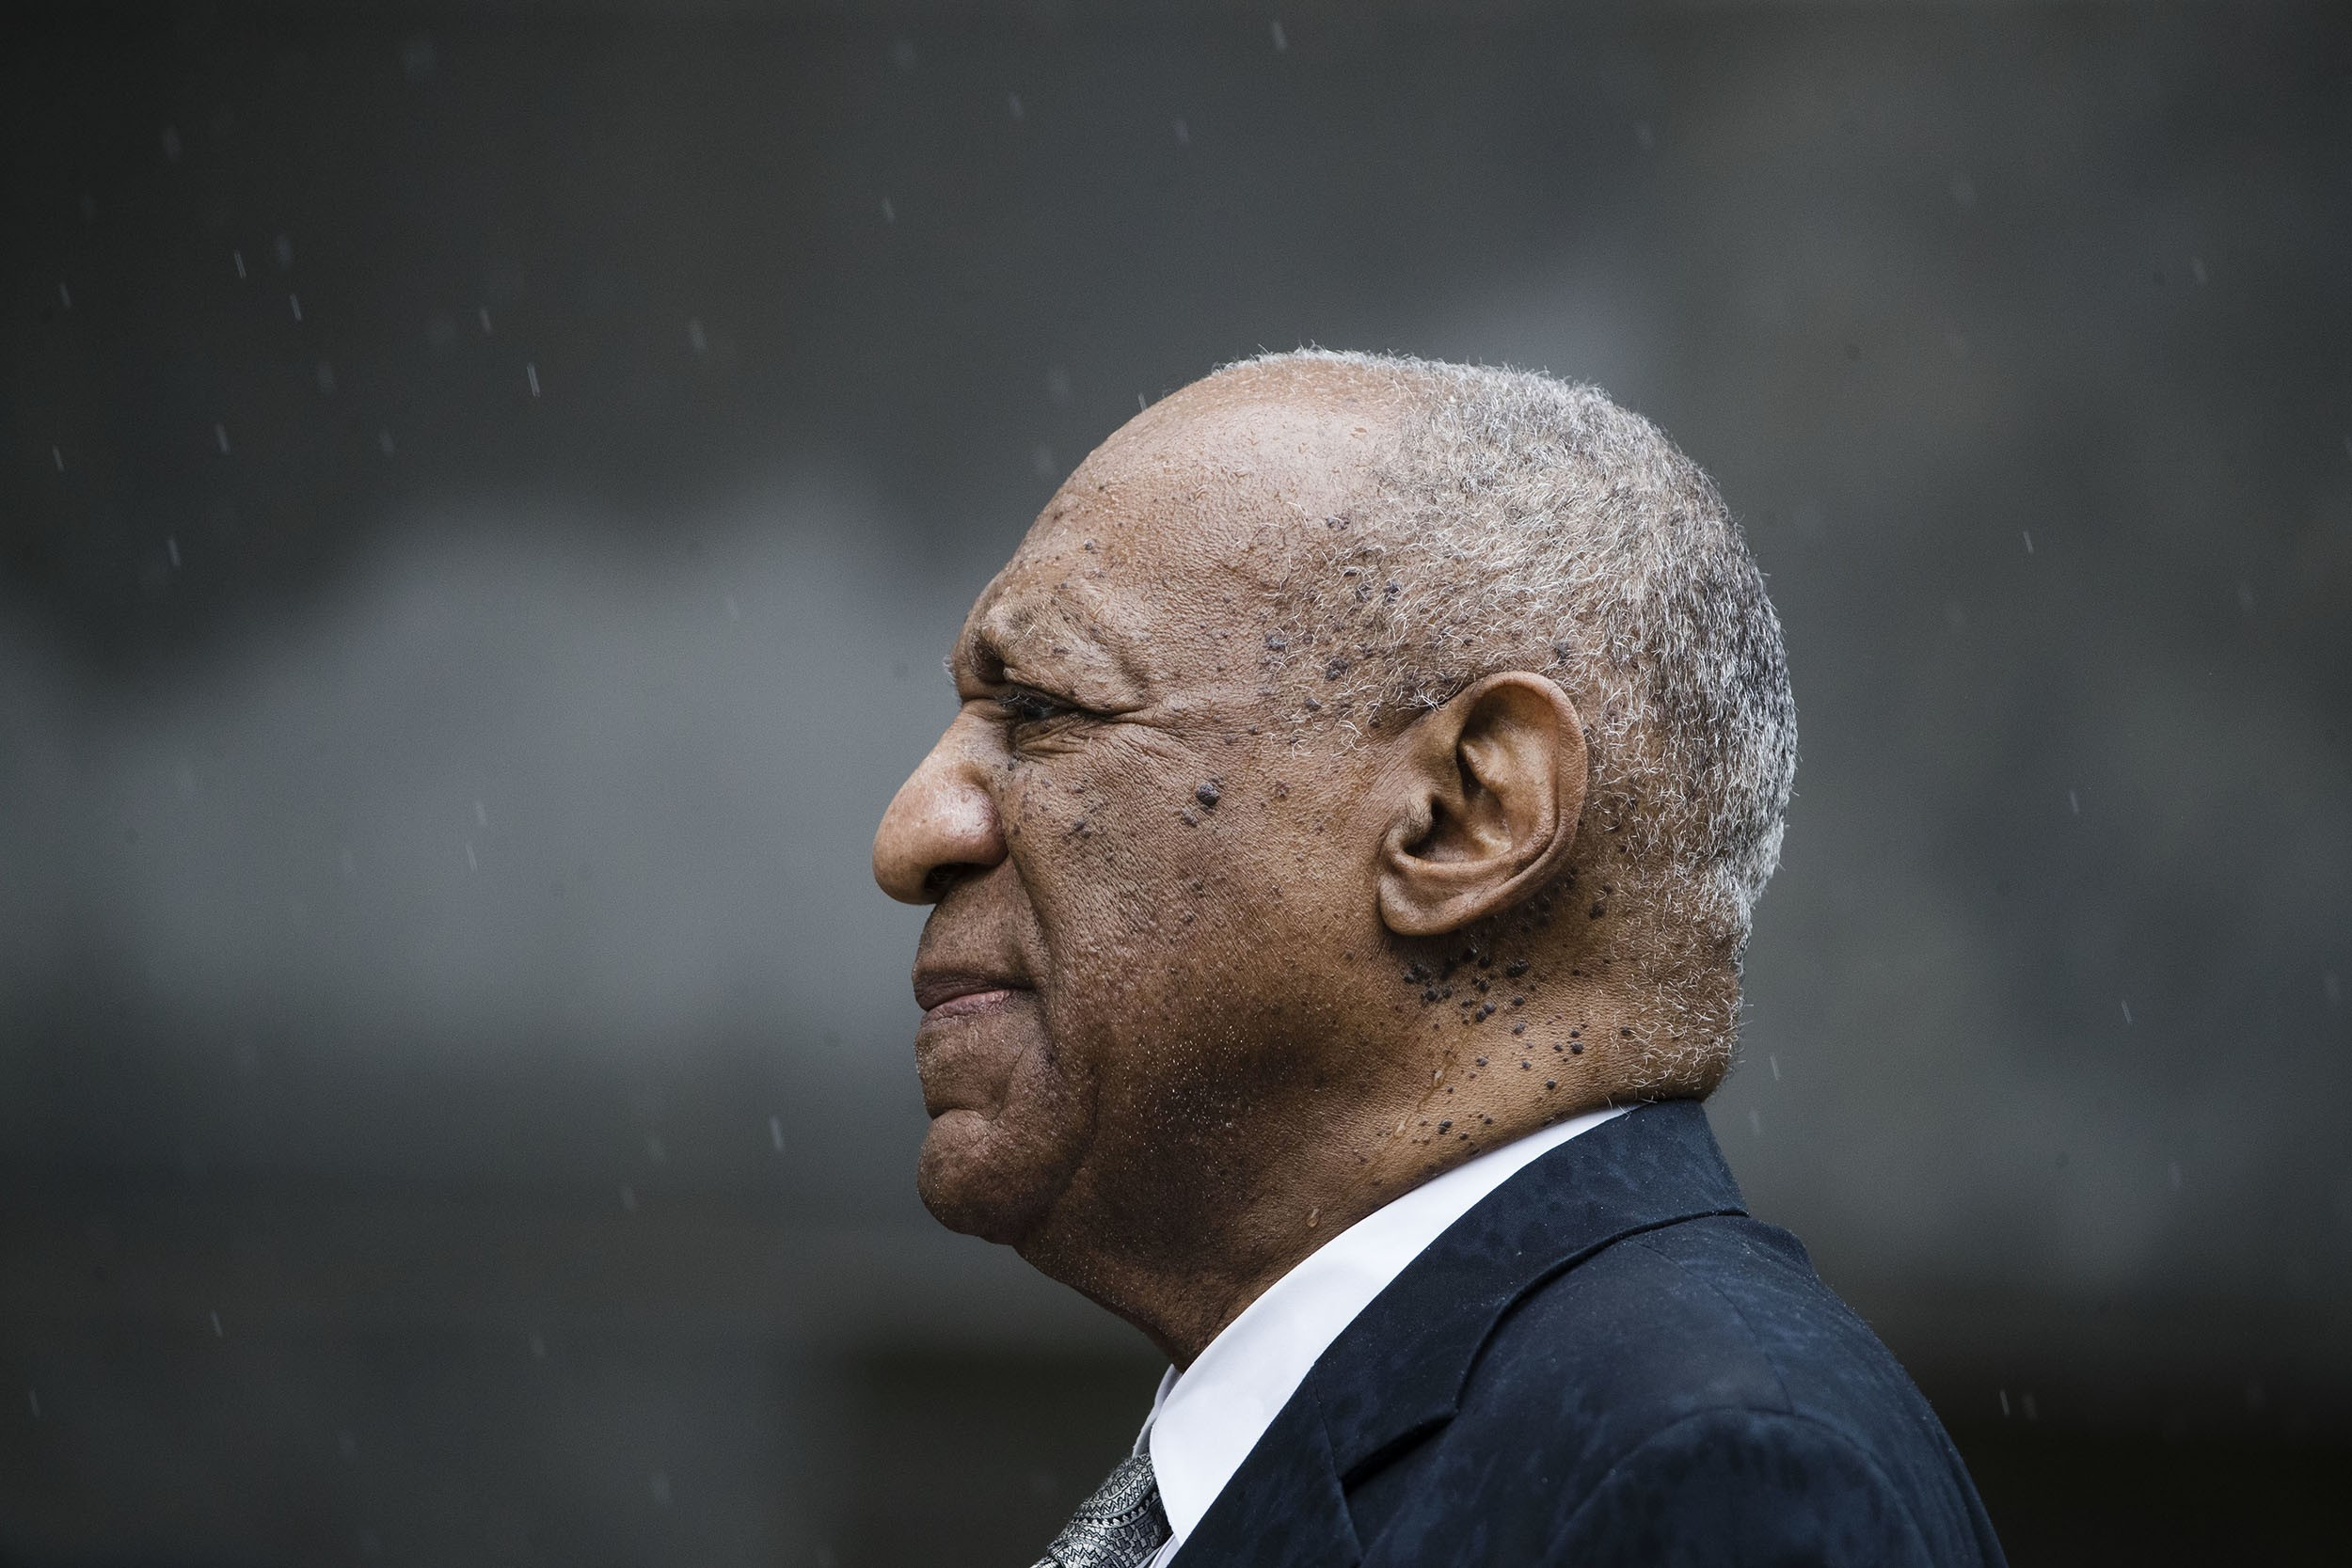 Sexual Assault: Prosecutors want Bill Cosby to be locked up immediately after sentencing